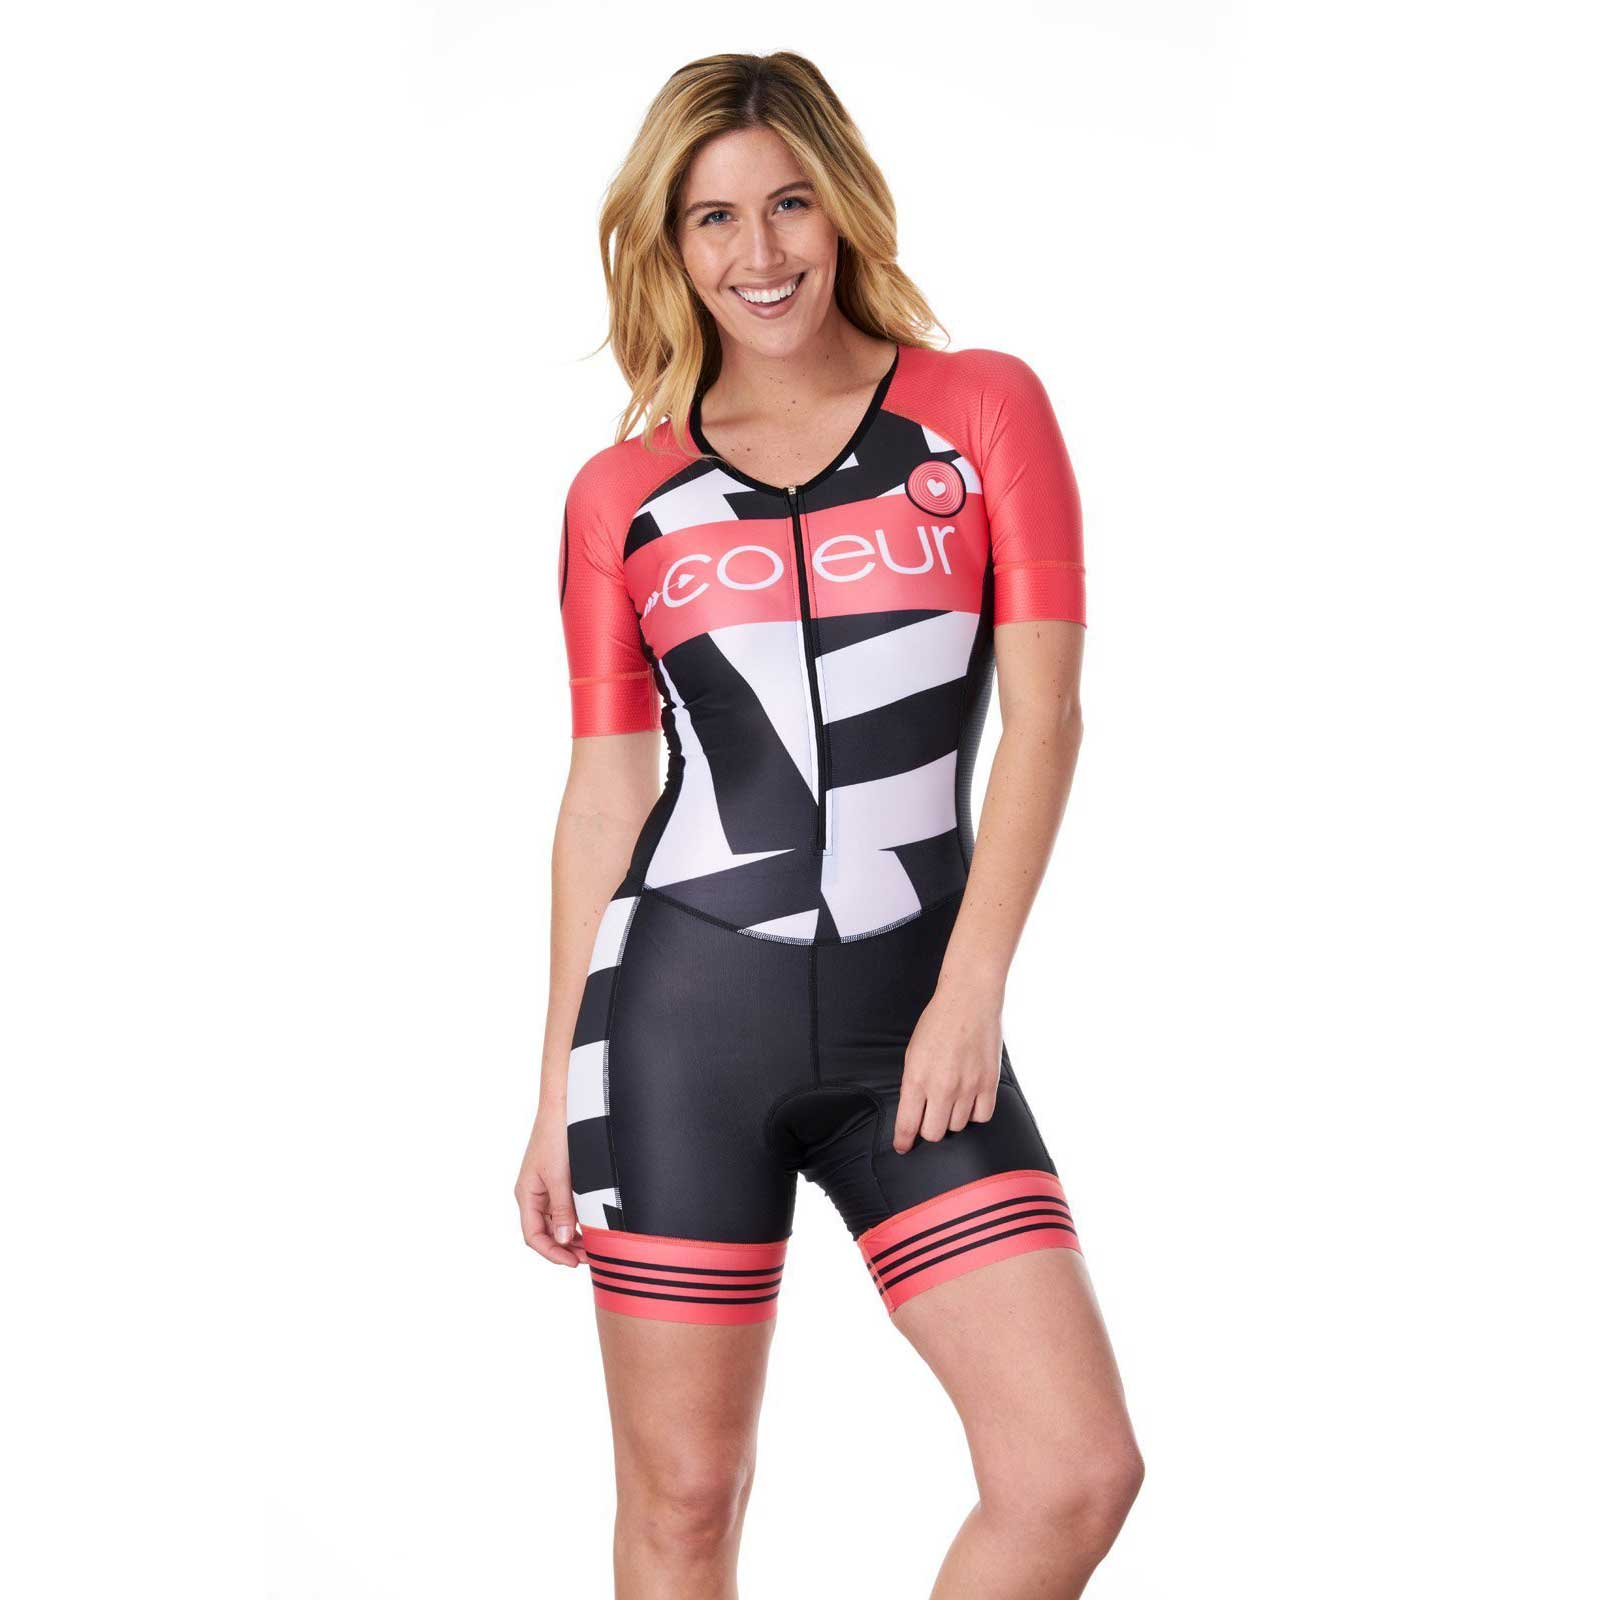 Coeur Sports Women's Sleeved Tri Suit